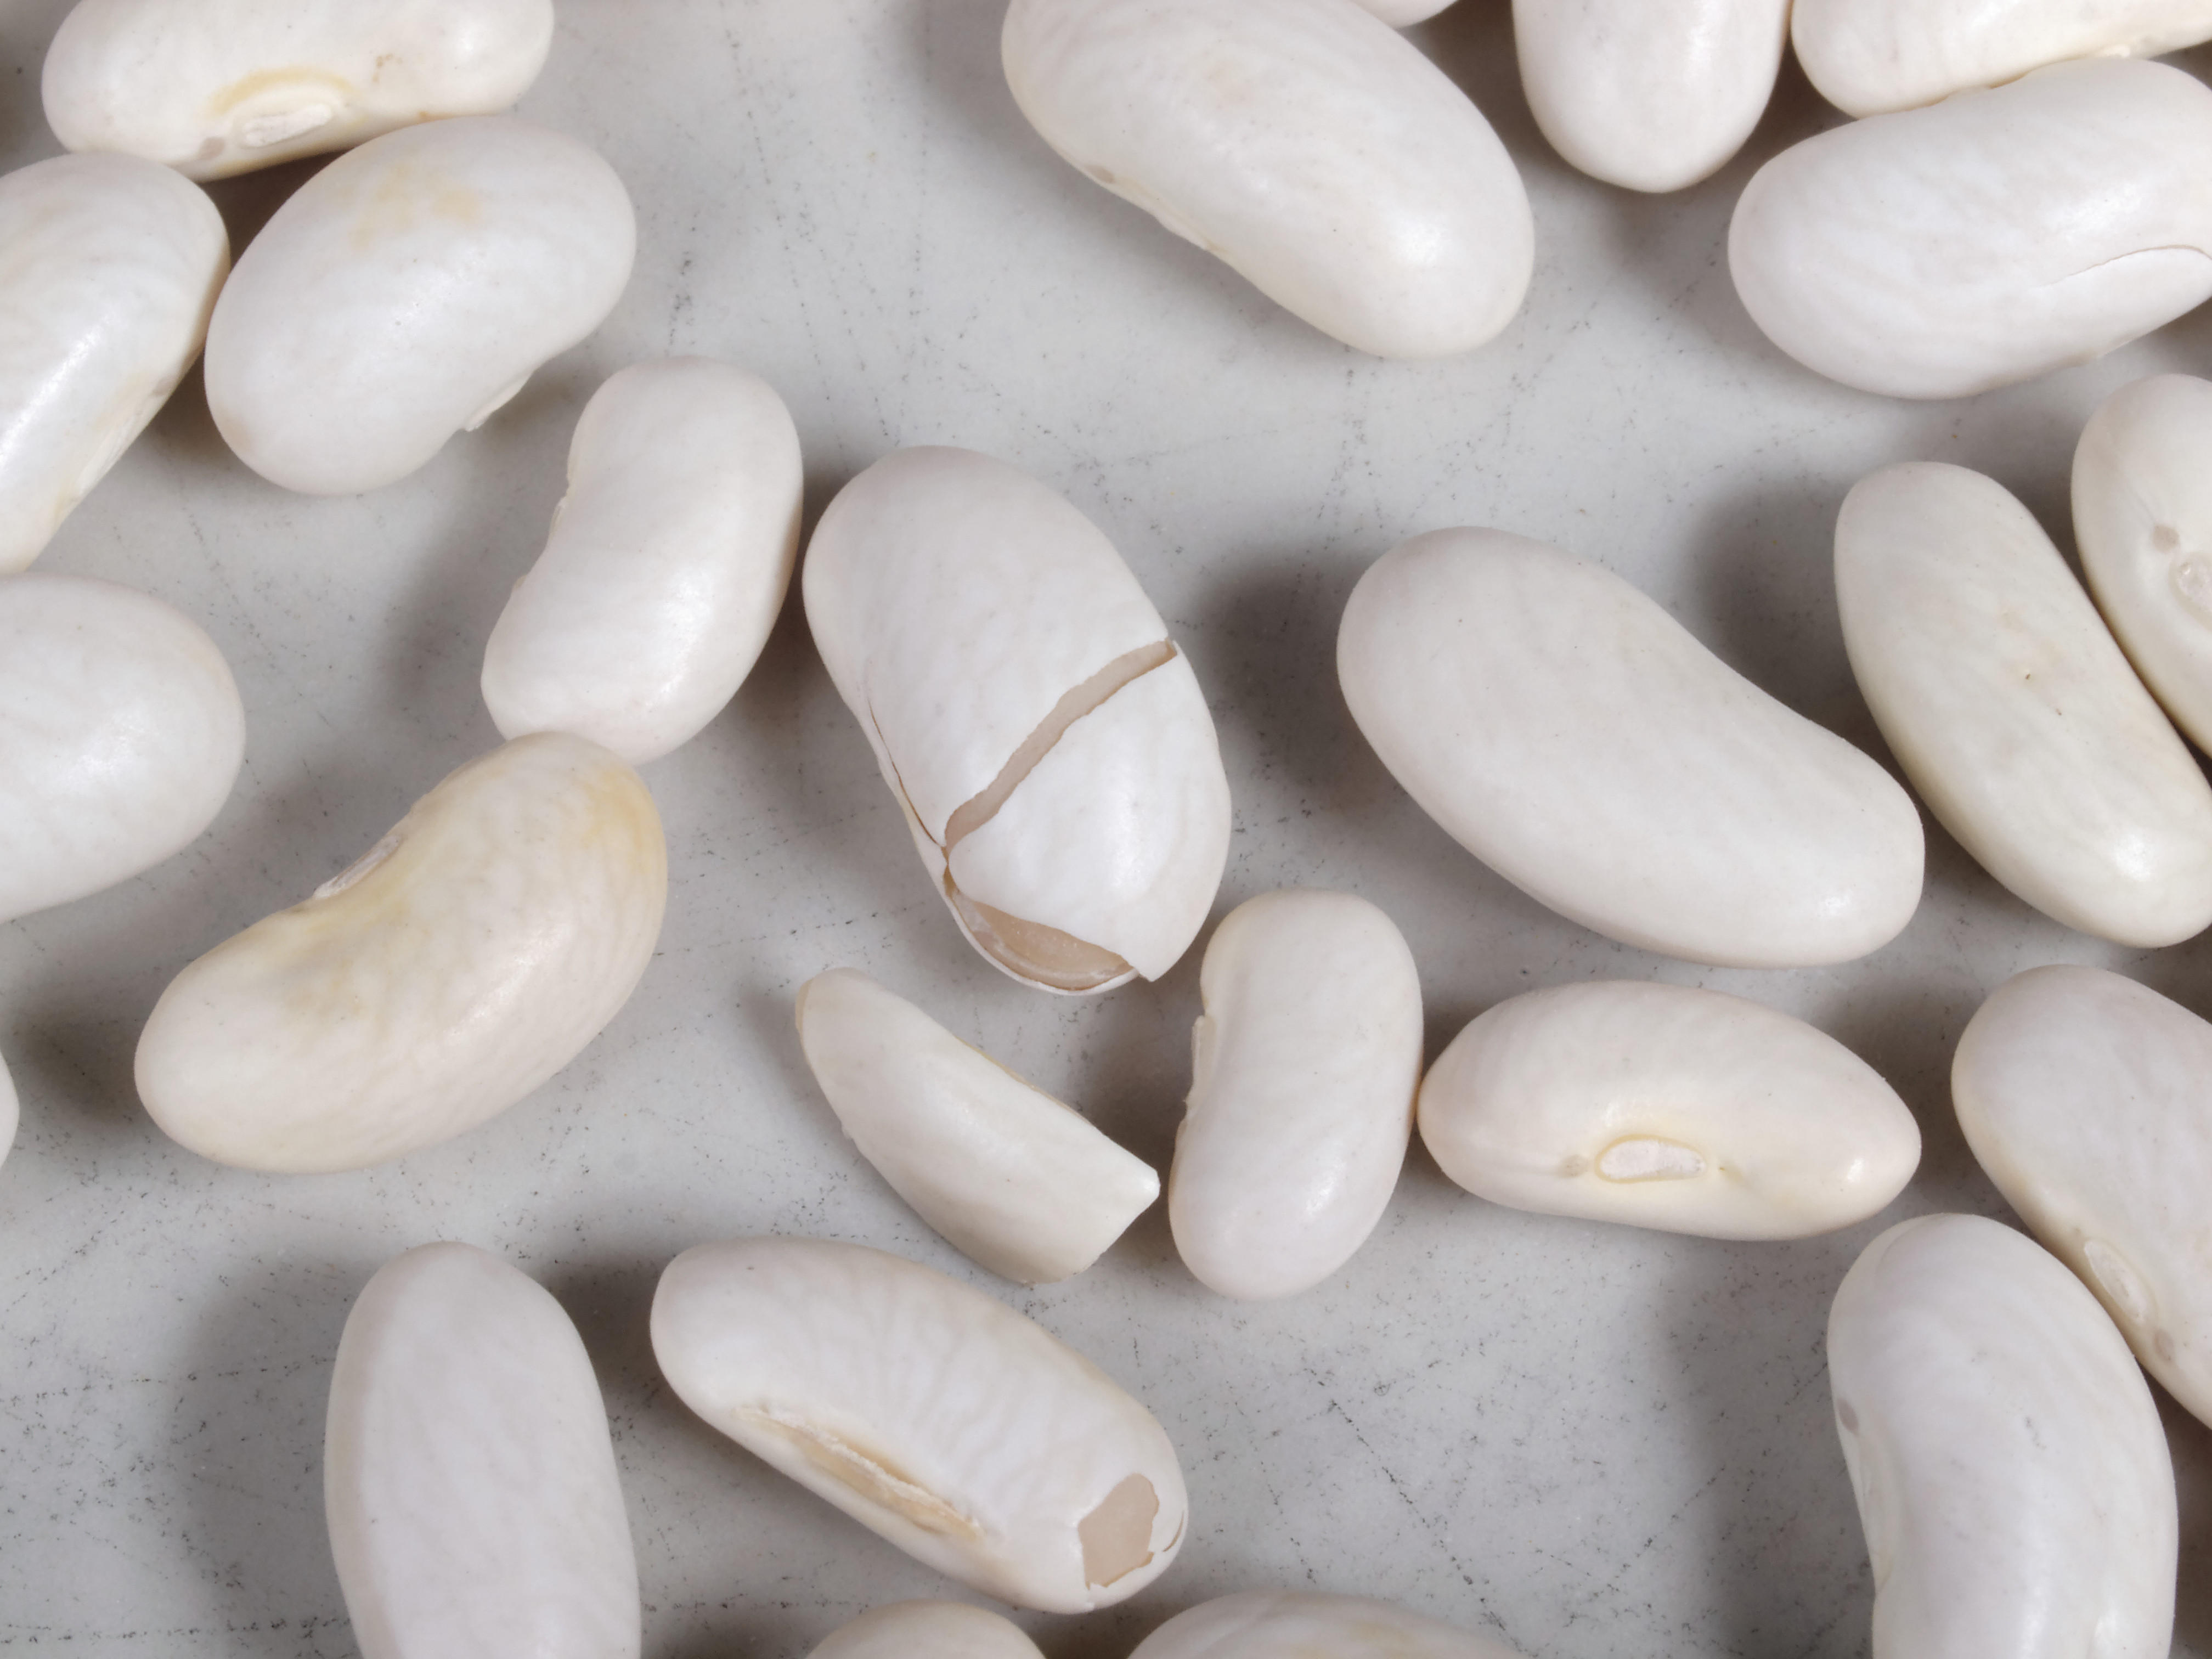 This should be beans-2.jpeg.  Is it missing?